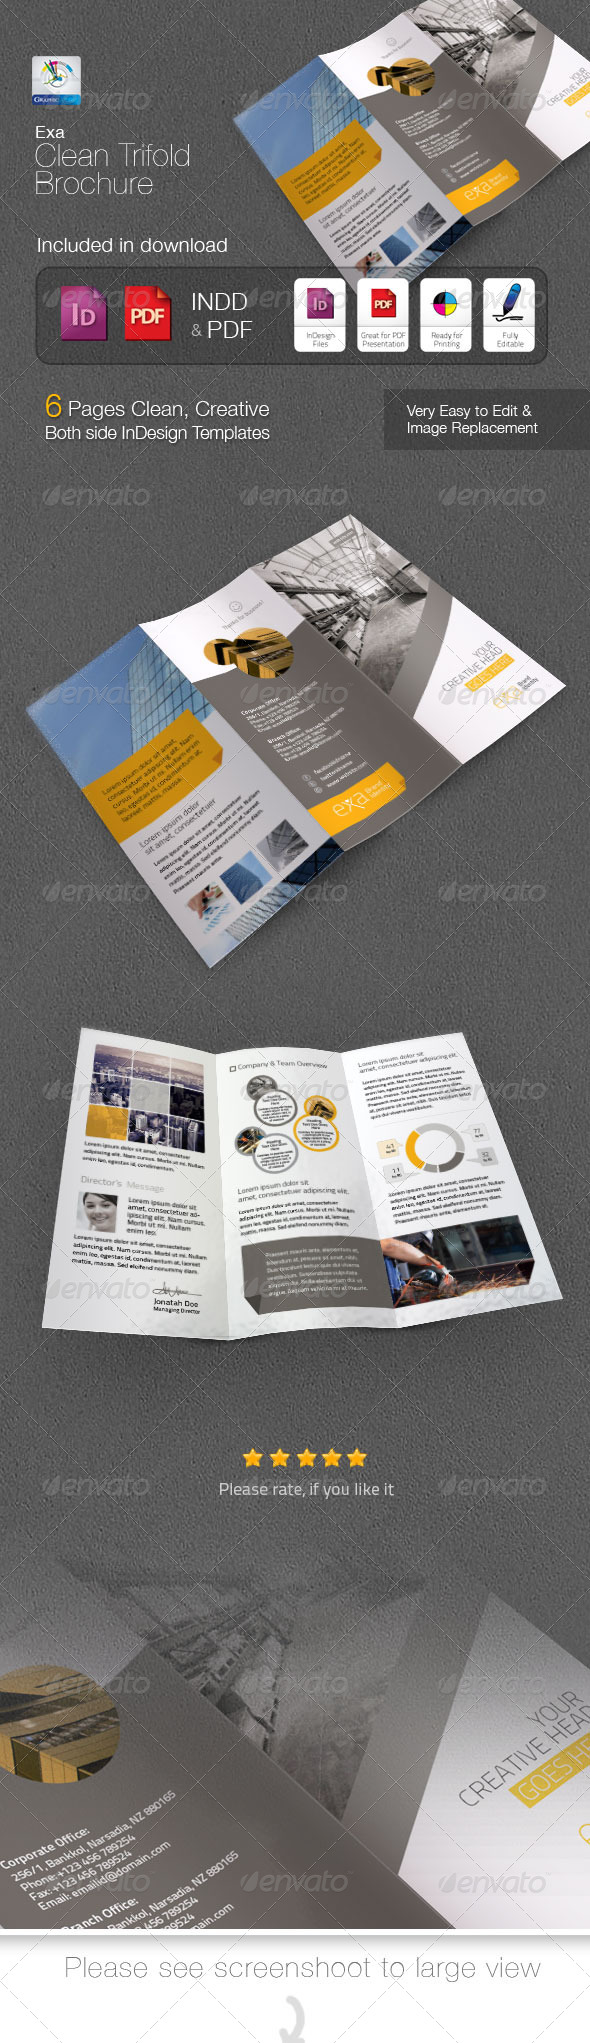 GraphicRiver Exa Clean Trifold Brochure 4899485